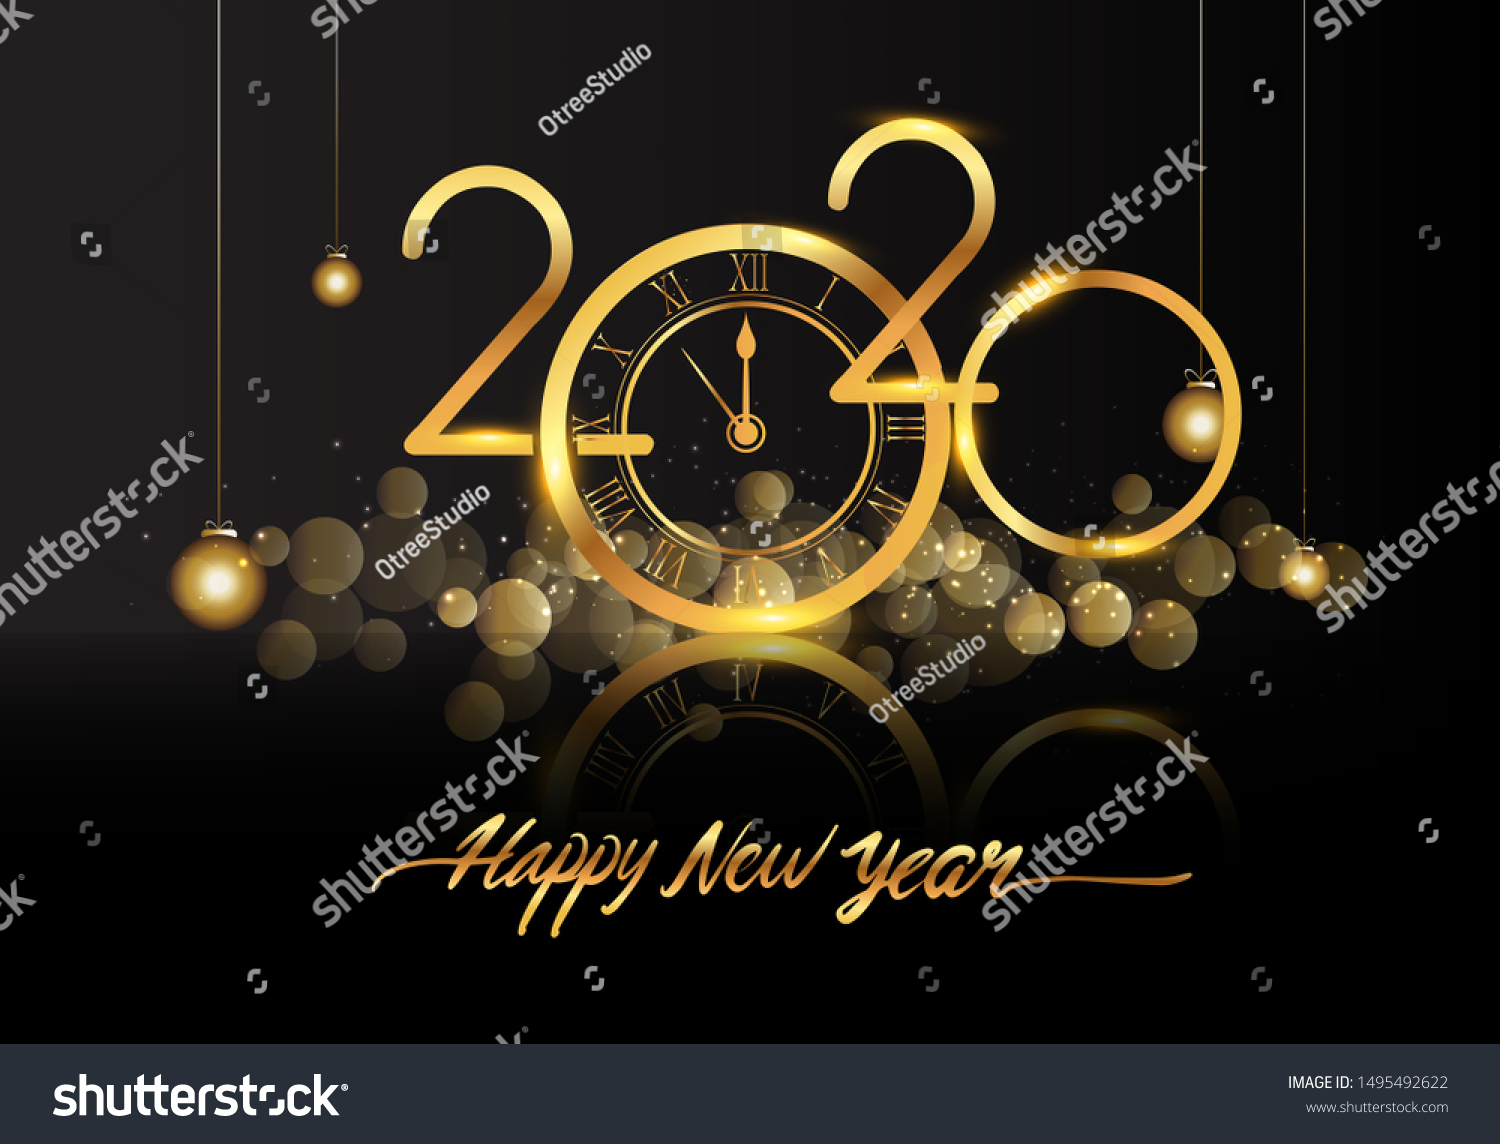 Happy New Year 2020 - New Year Shining background with gold clock and glitter.